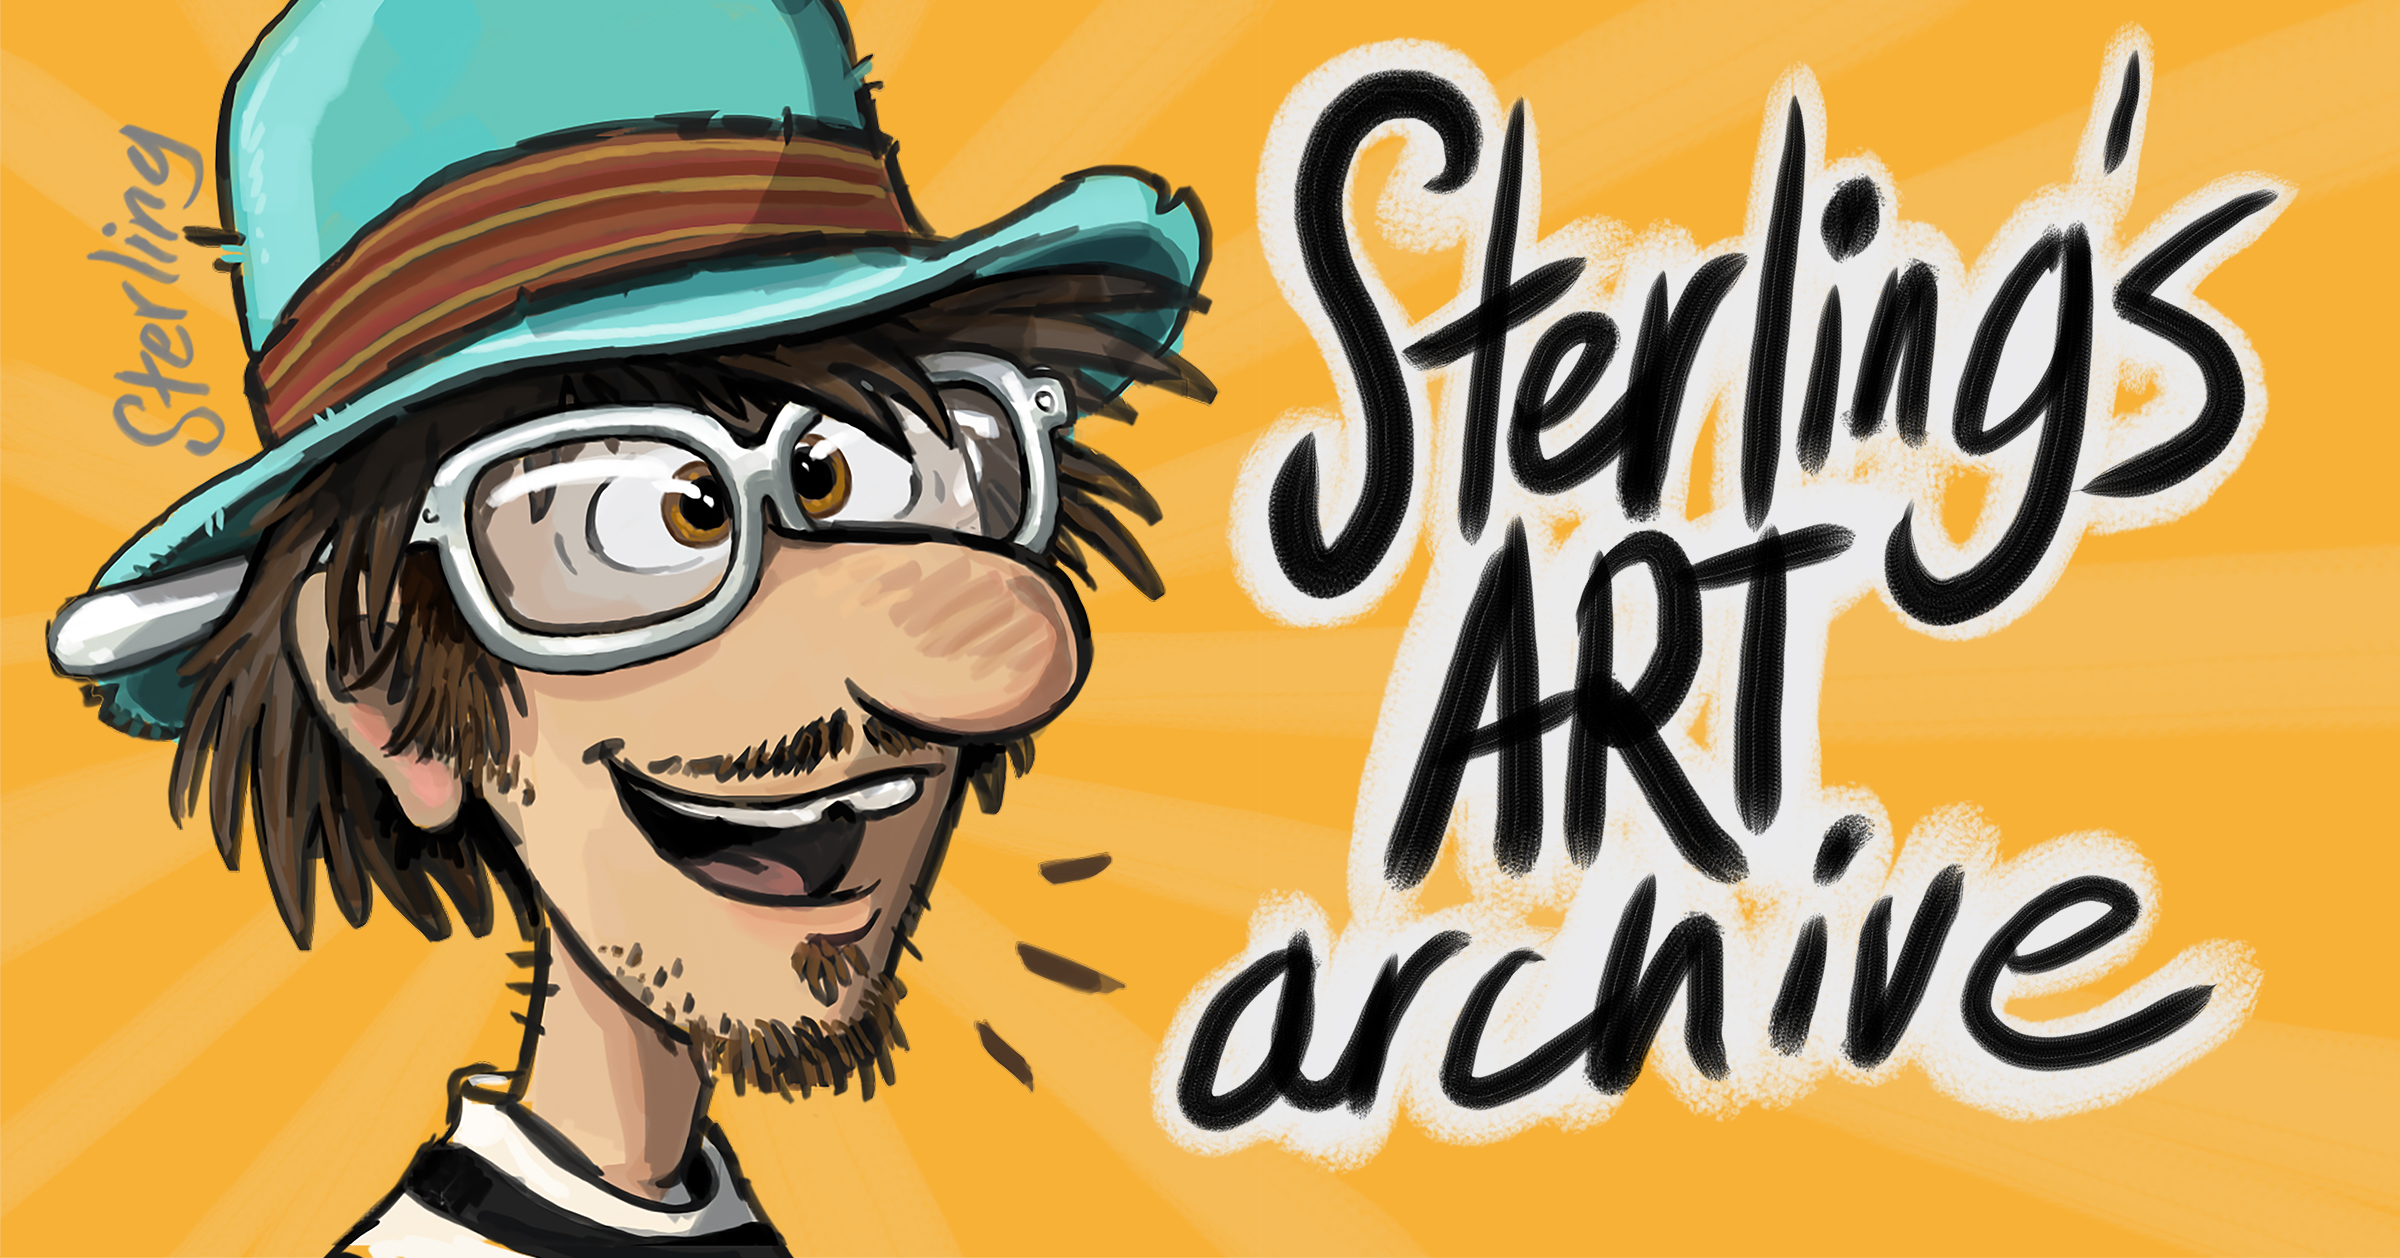 Sterling Sheehy Art Archive Welcome Banner